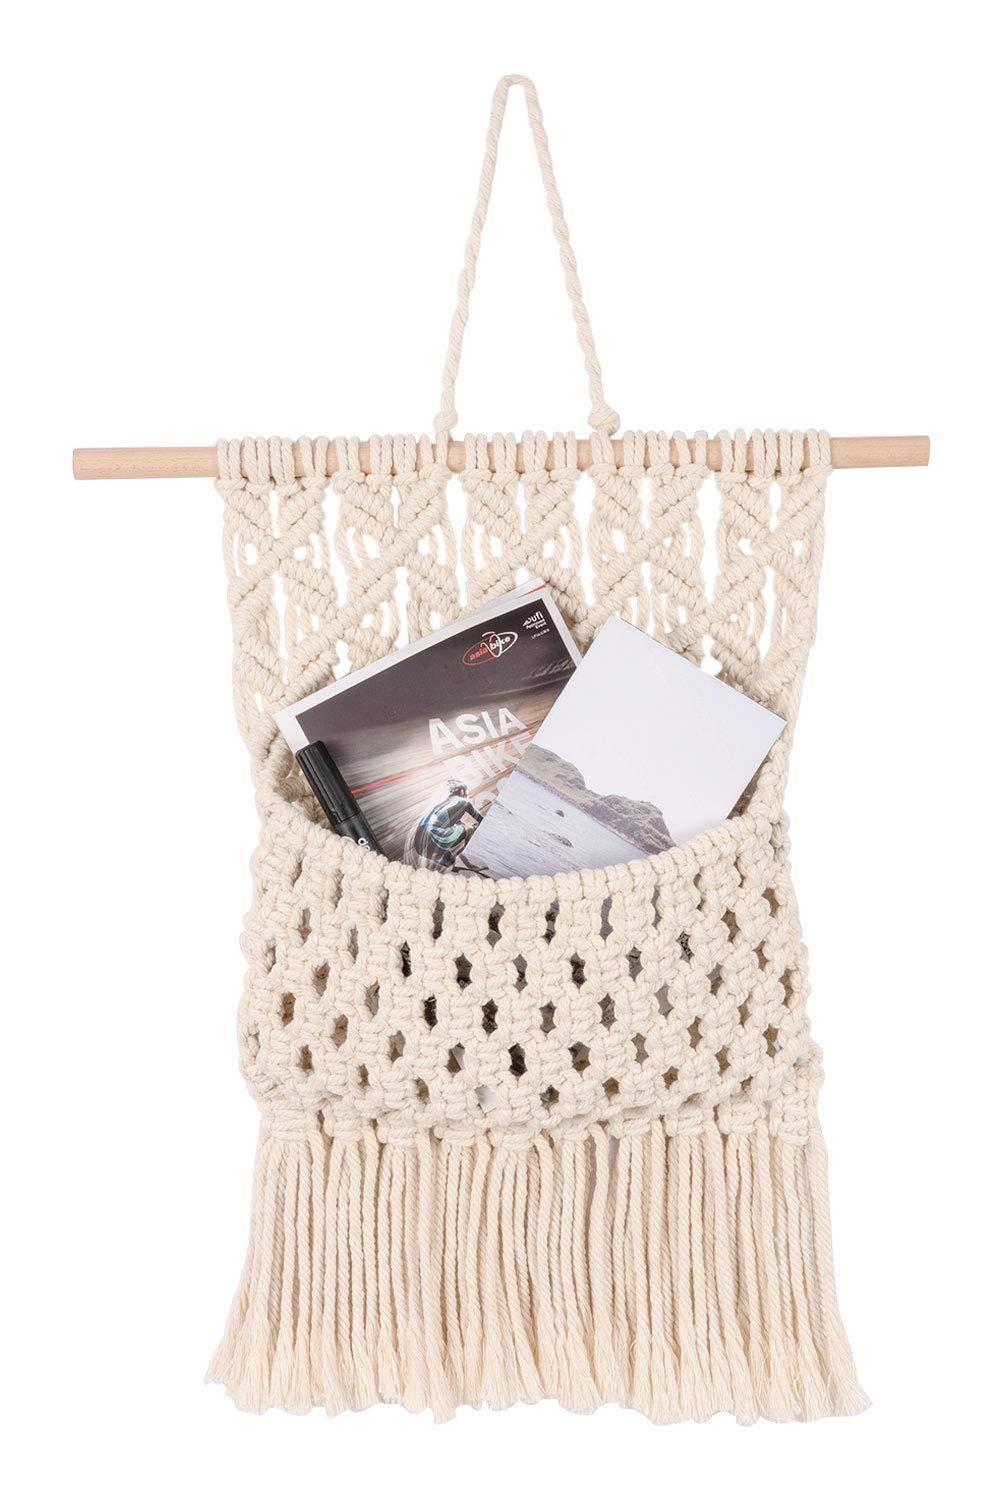 Macrame Wall Hanging Magazine Holder Organizer